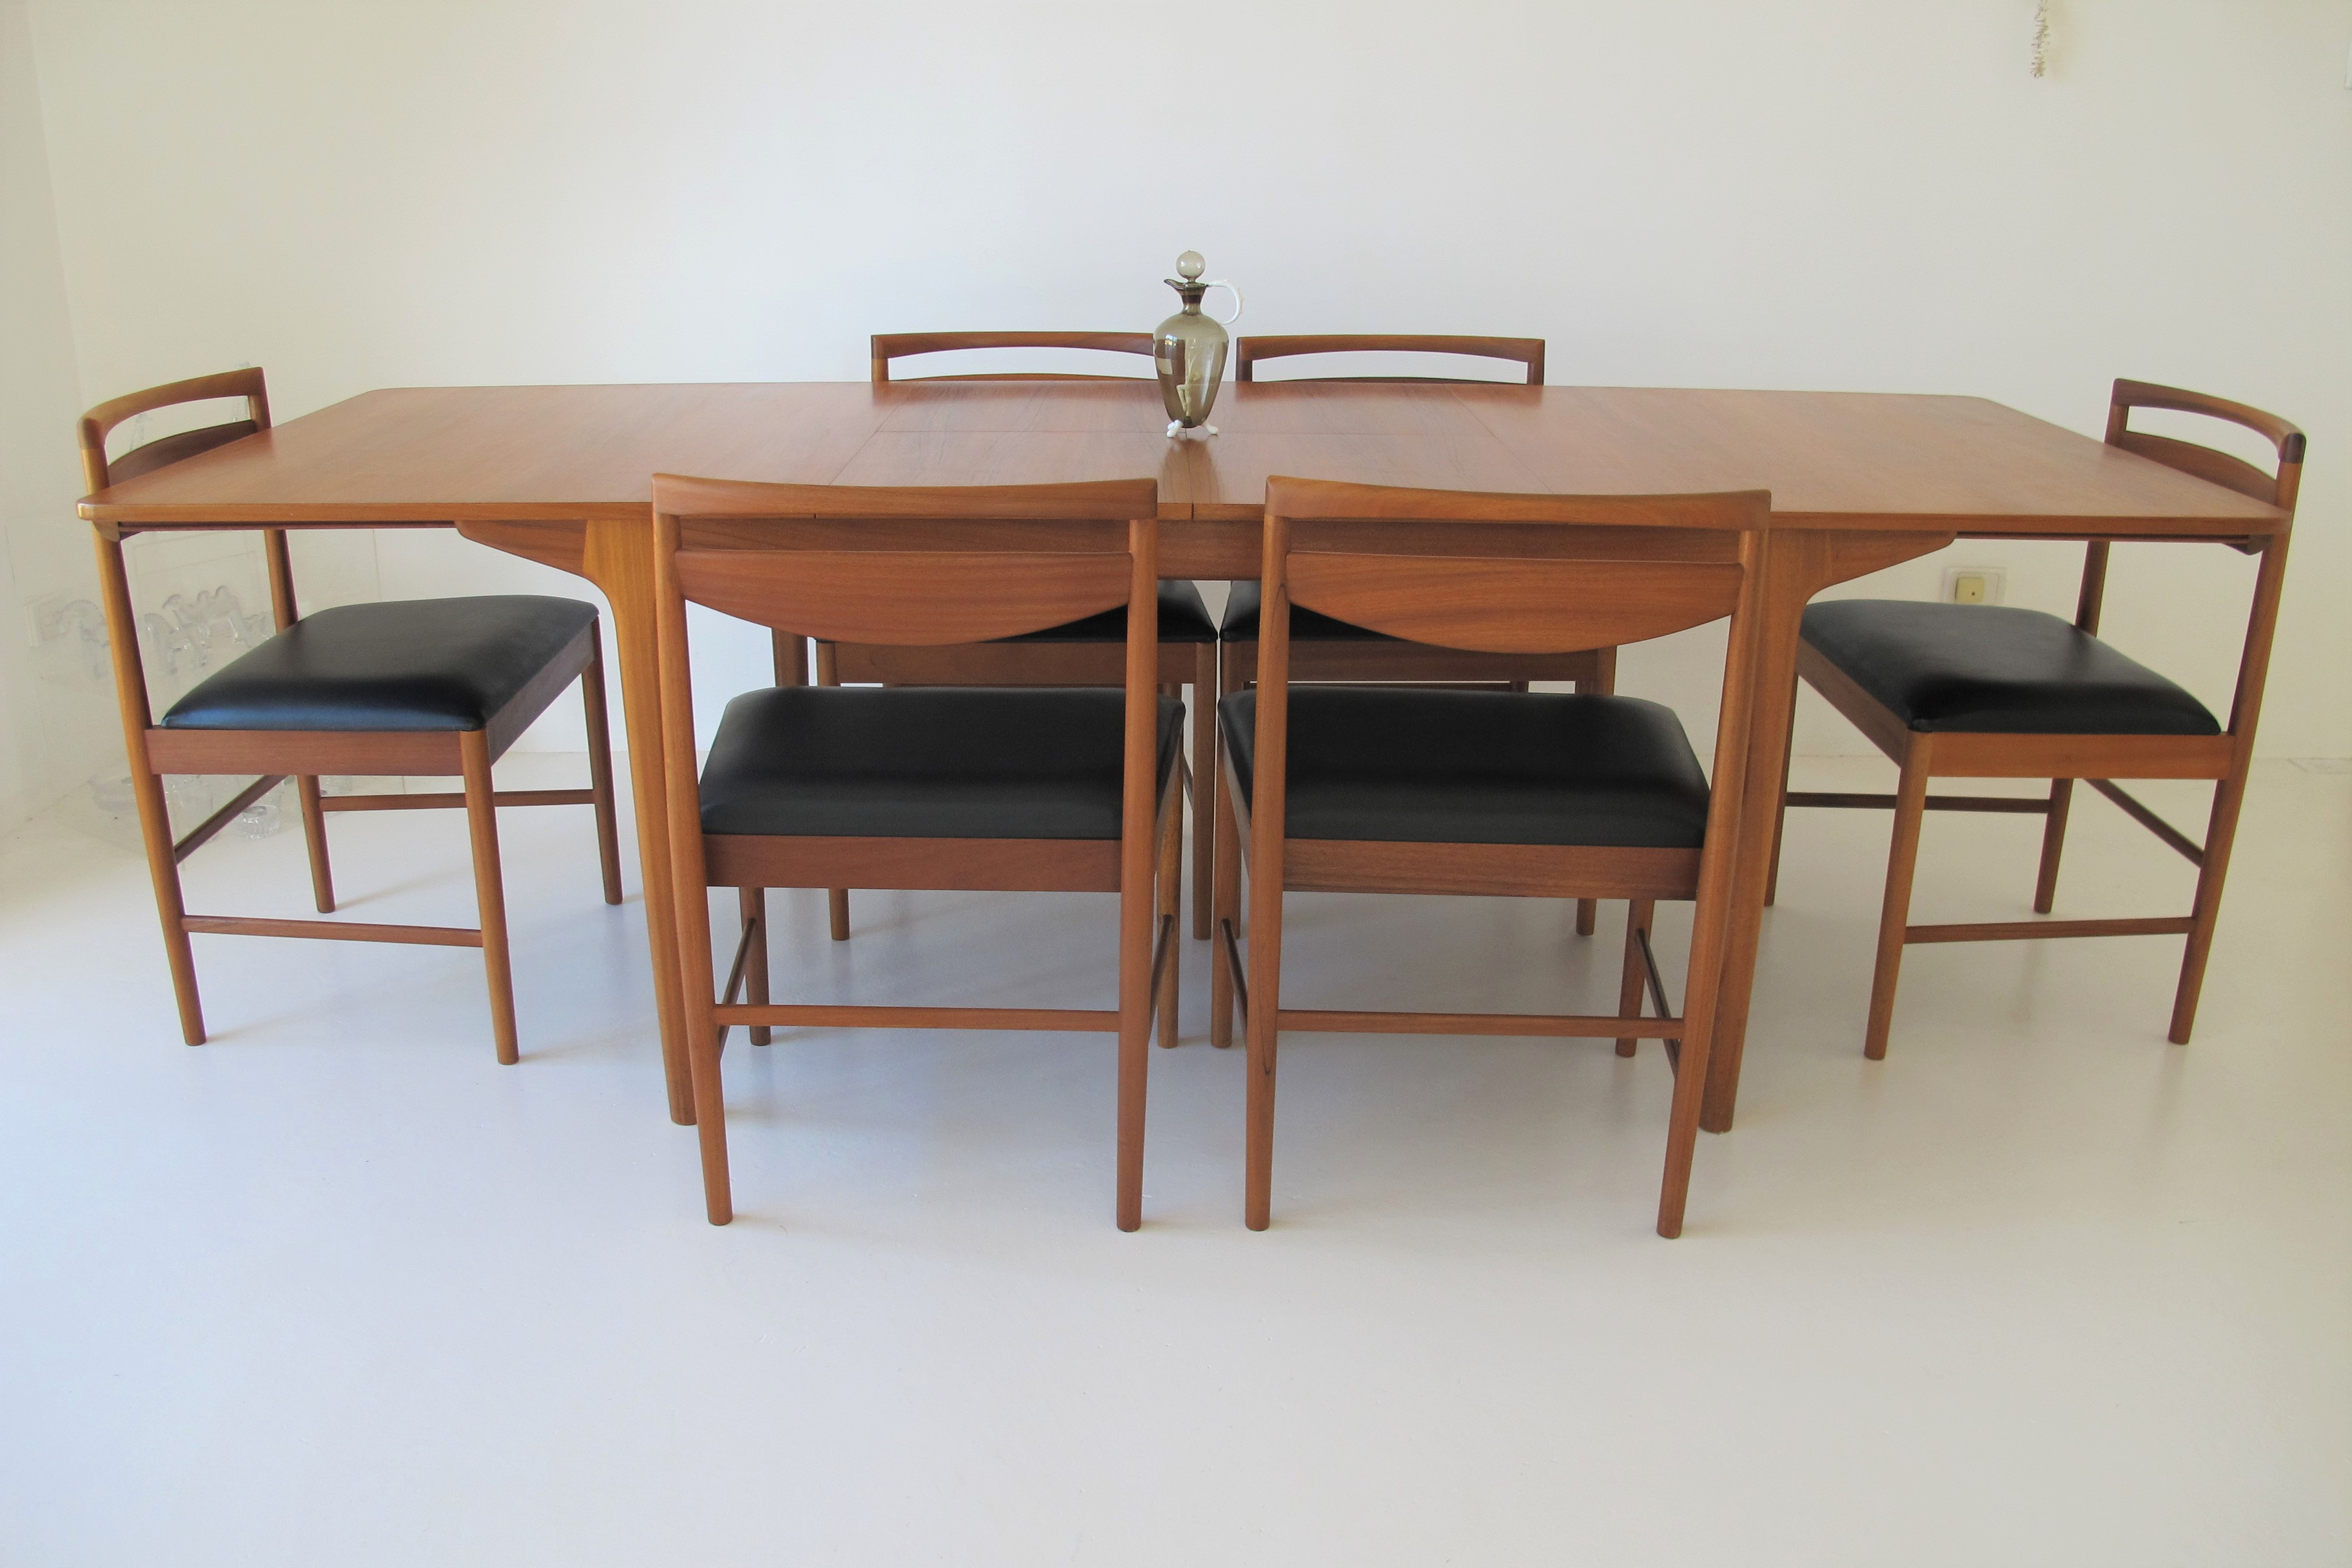 Eames Chairs X6 Teak Dining Chairs X6. Vintage 1970's. Mcintosh Scotland